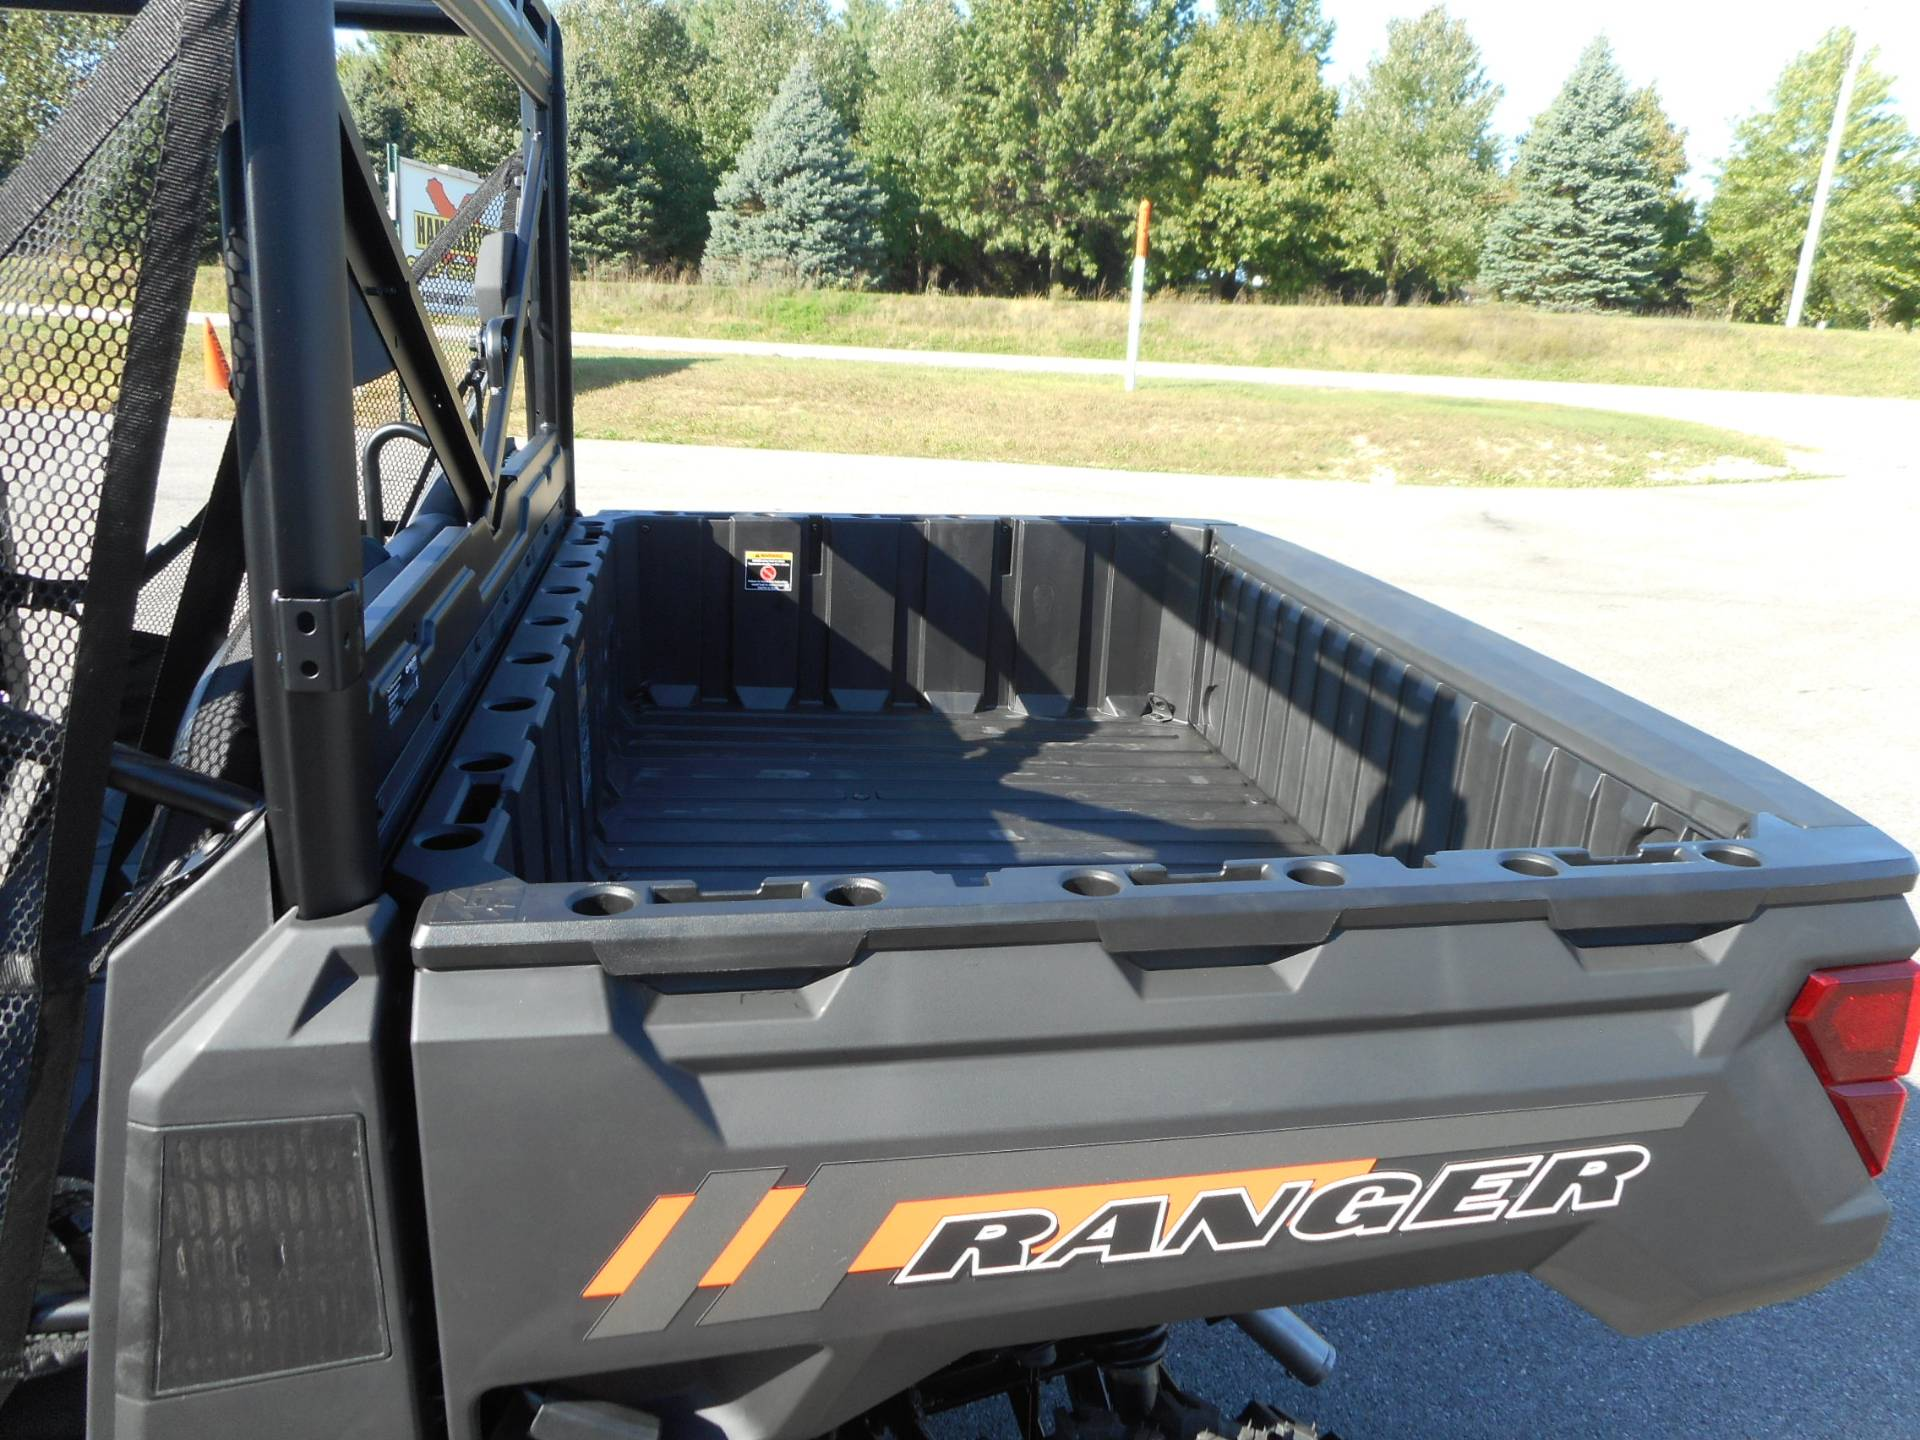 2020 Polaris Ranger Crew 1000 Premium in Belvidere, Illinois - Photo 4